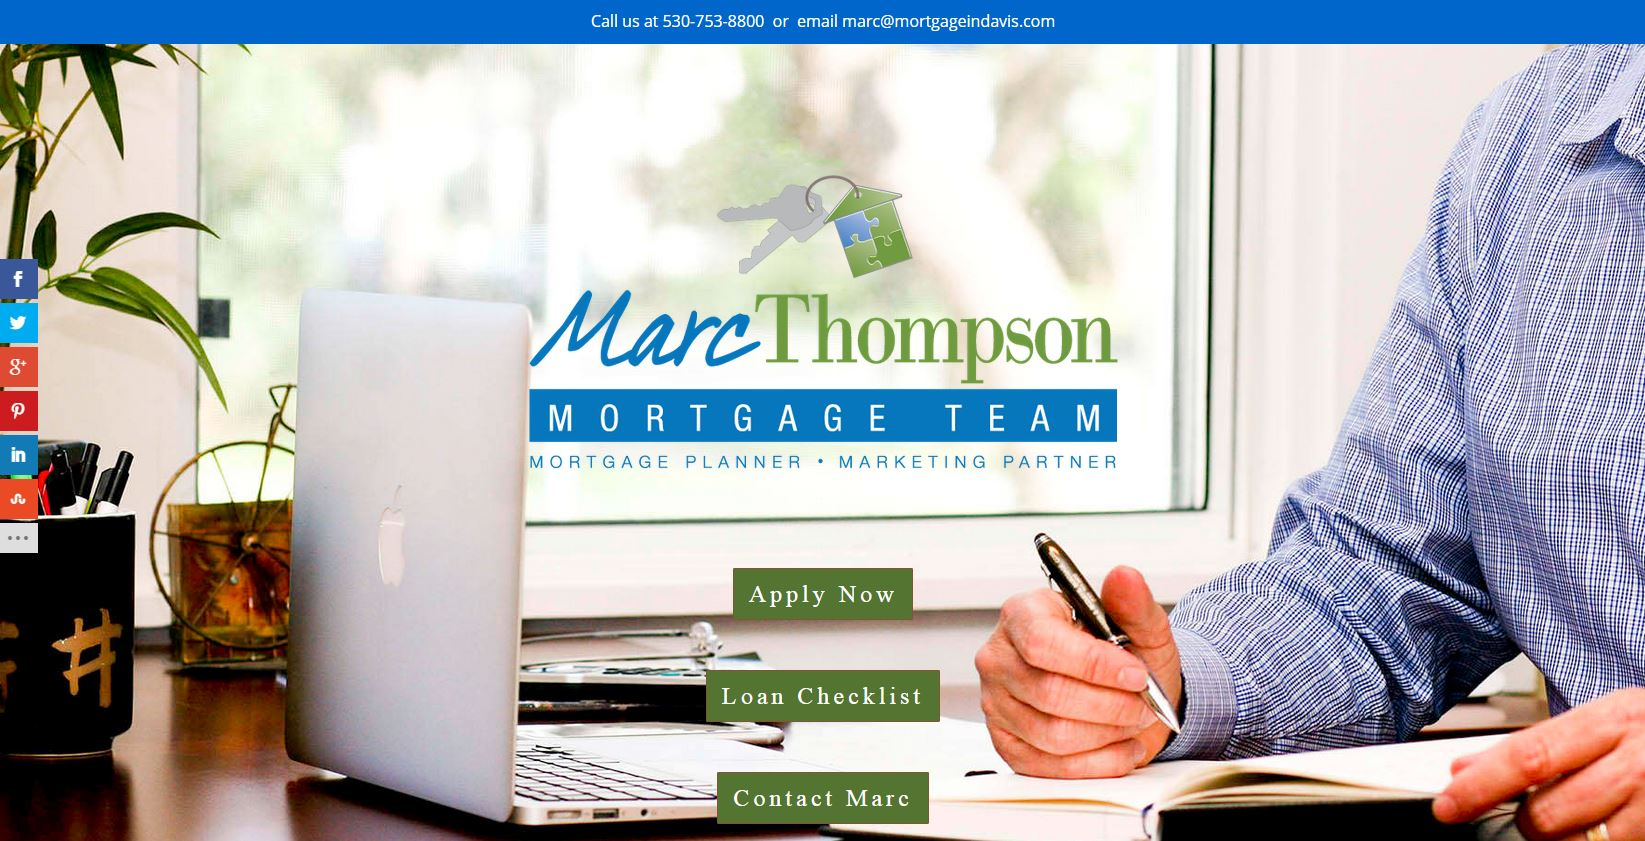 Screenshot of MortgageInDavis.com